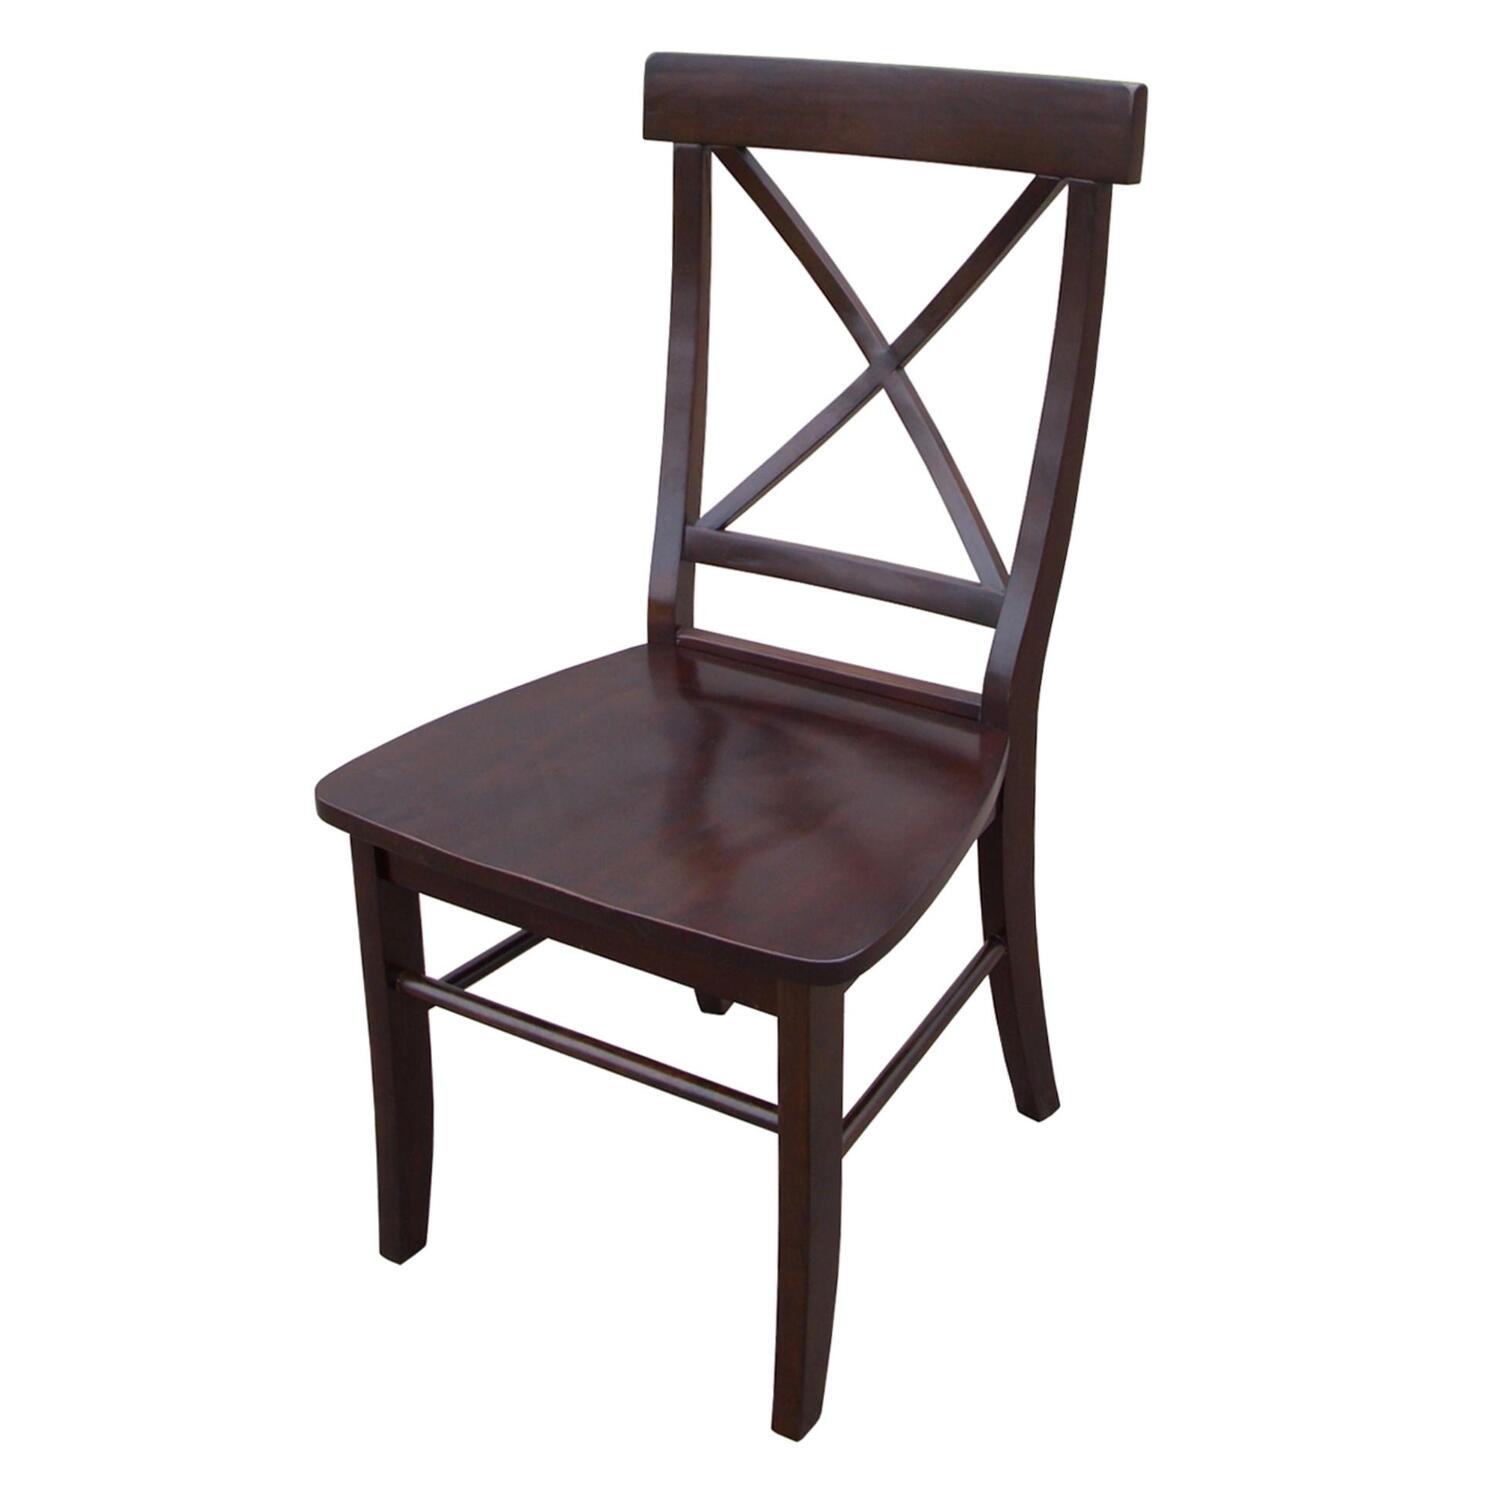 x back chairs double seat folding chair international concepts with solid wood